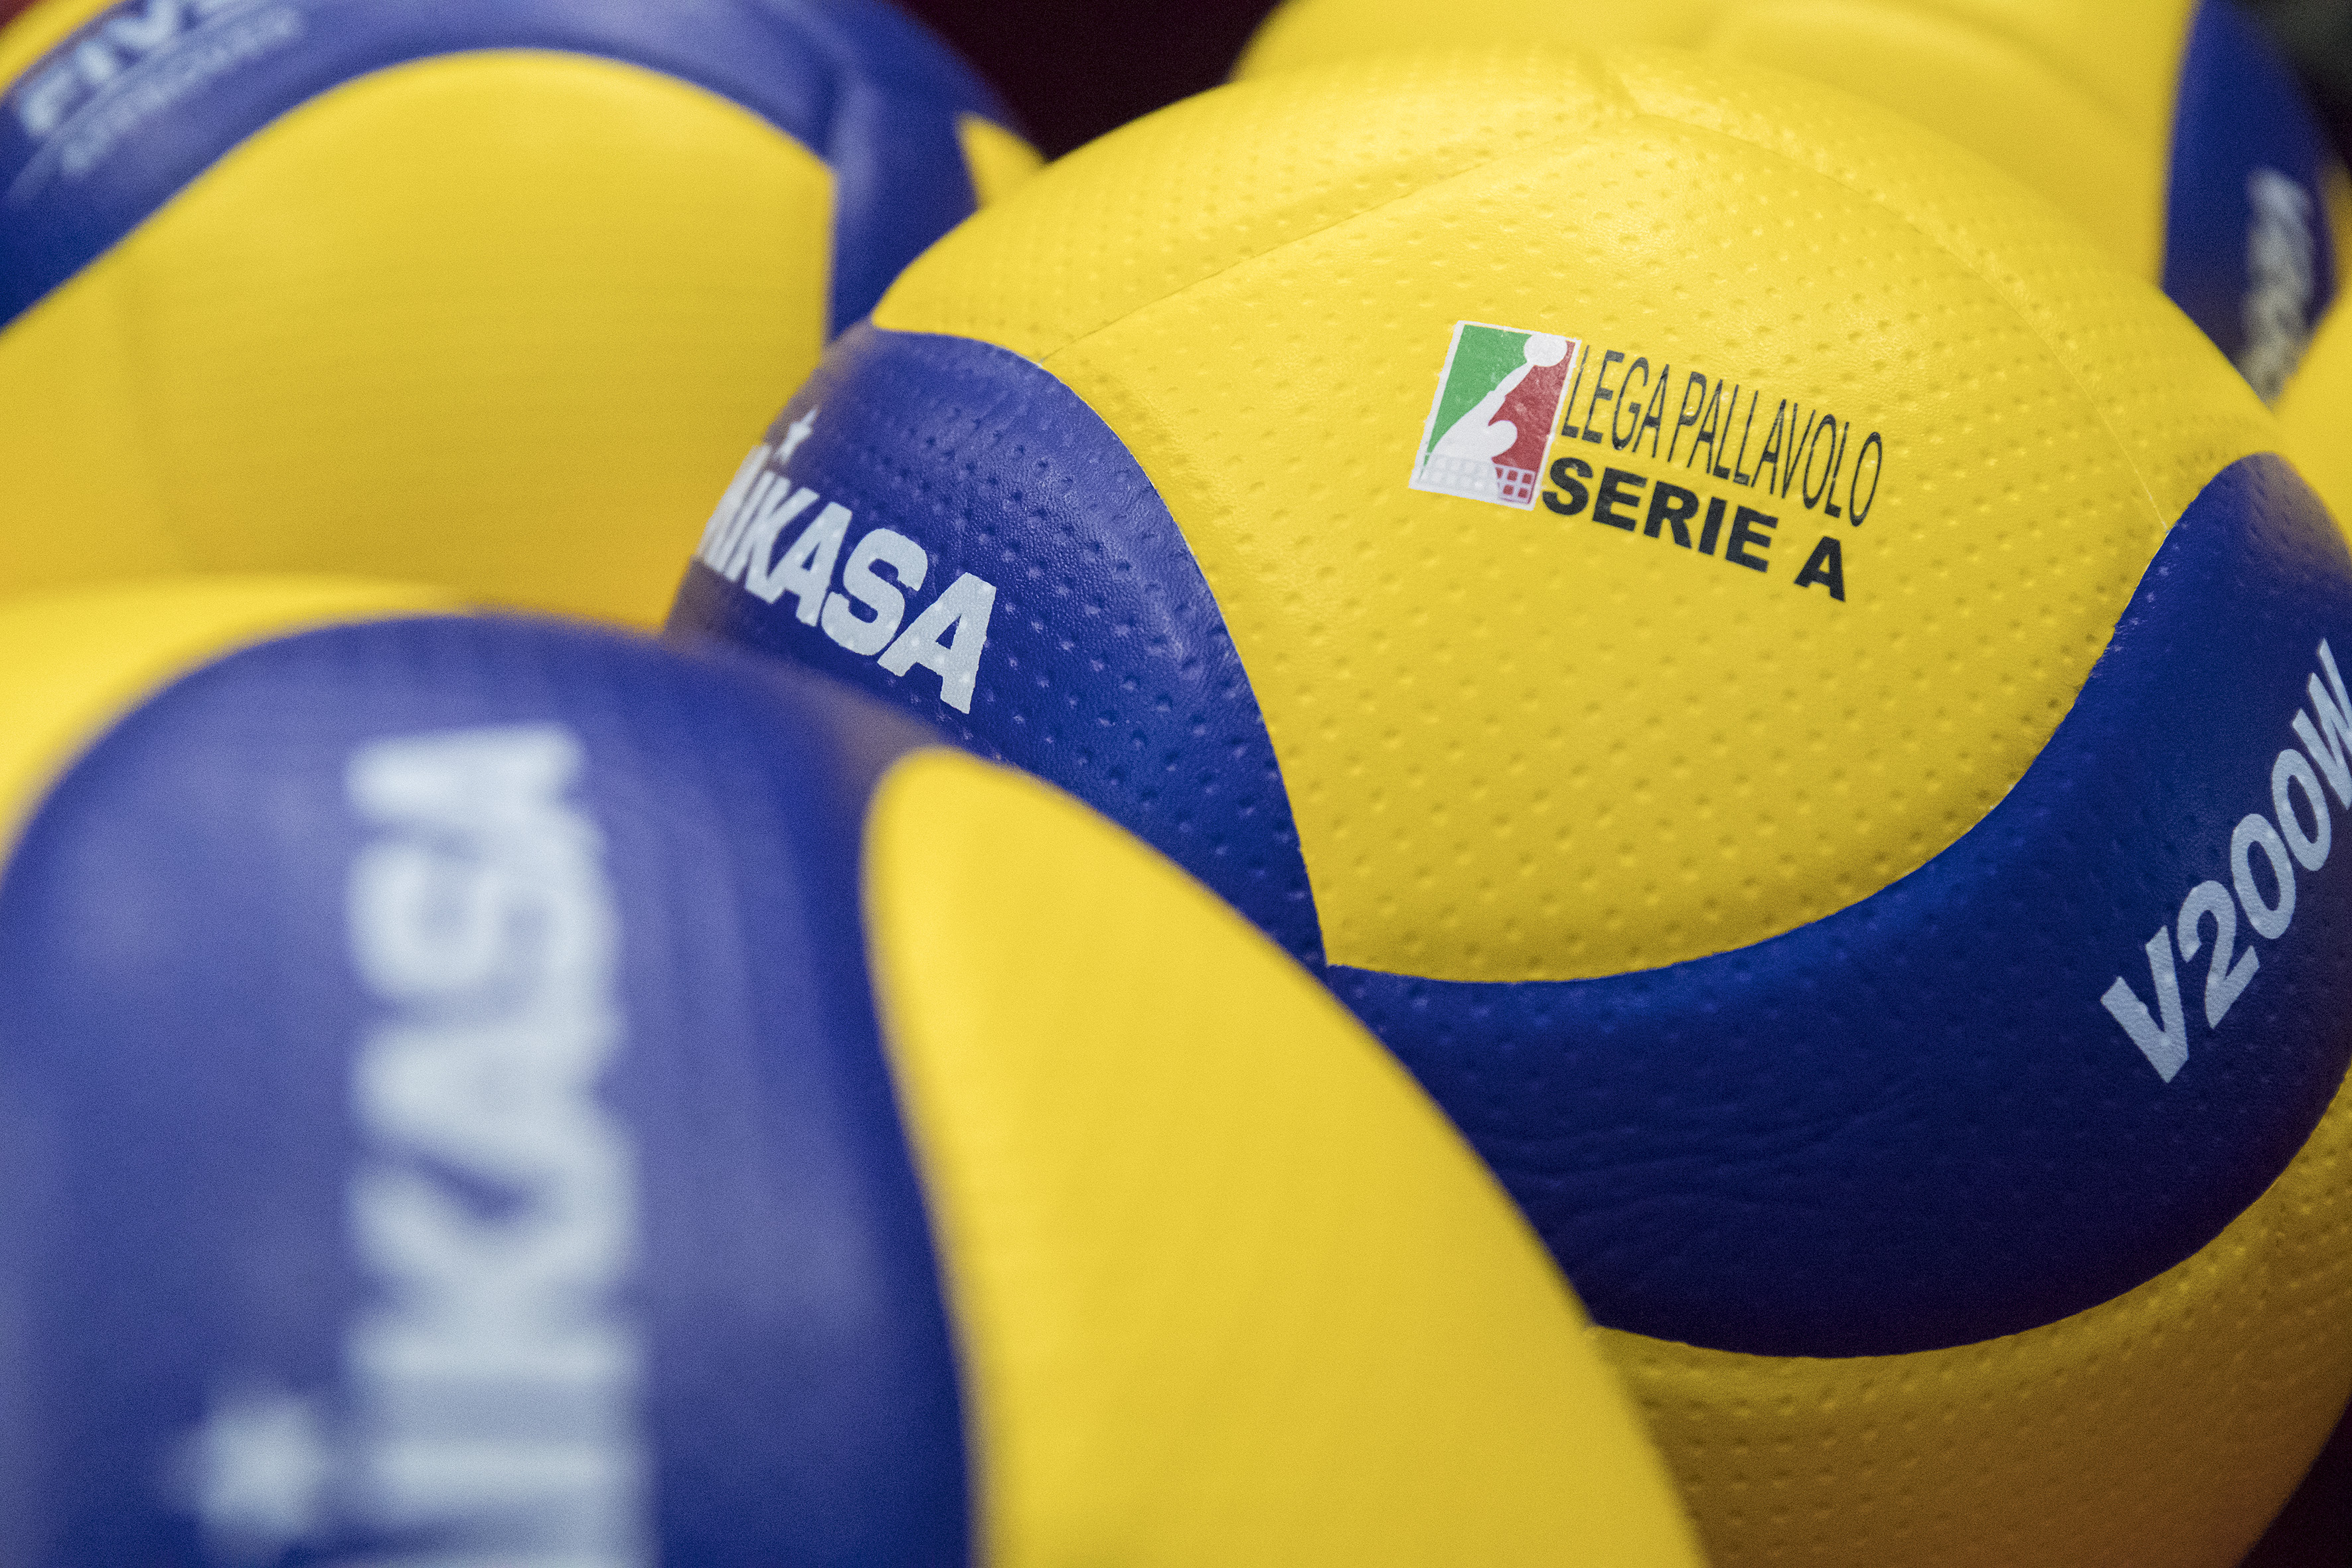 Calendario Volley A2.Lega Pallavolo Serie A